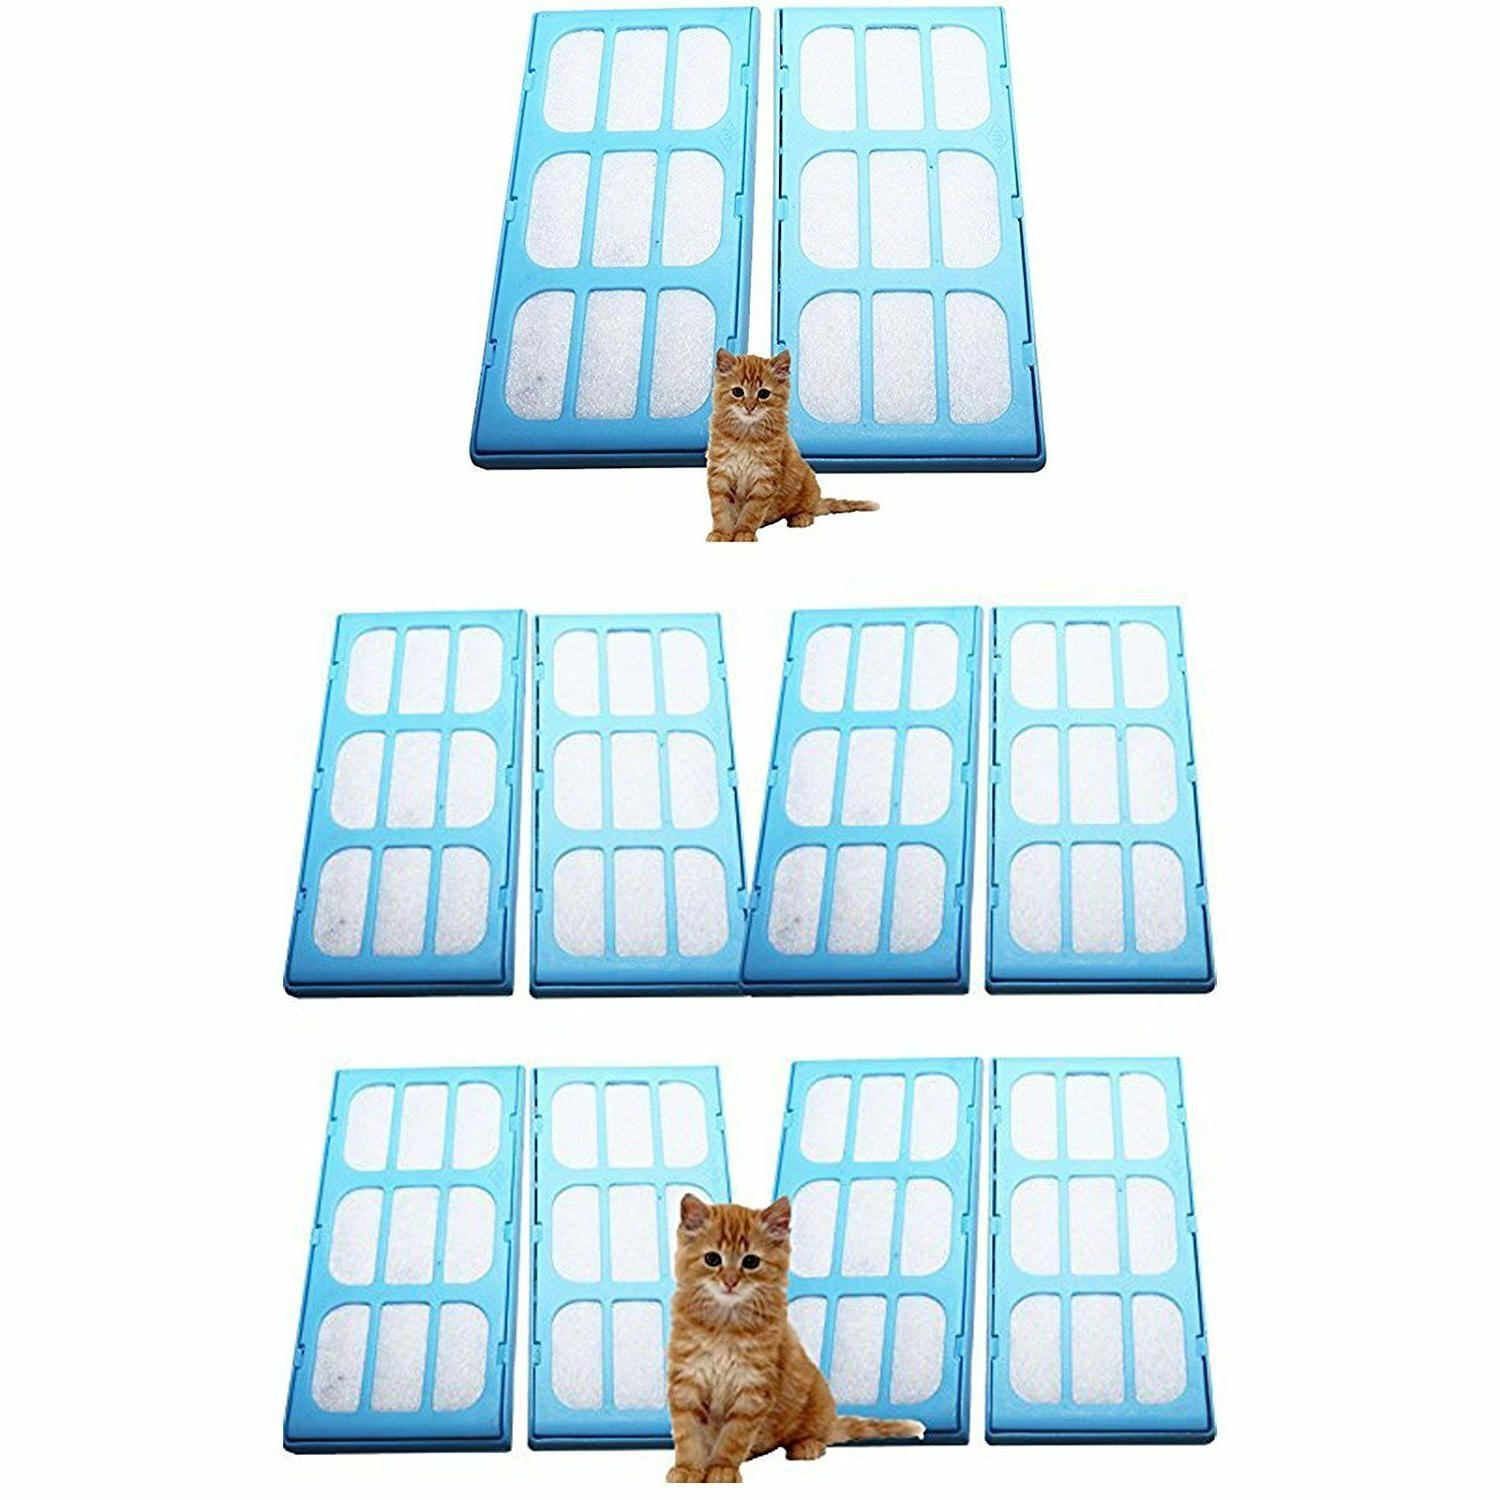 Replacement Water Filter Cartridges for Cat Mate & Dog Mate